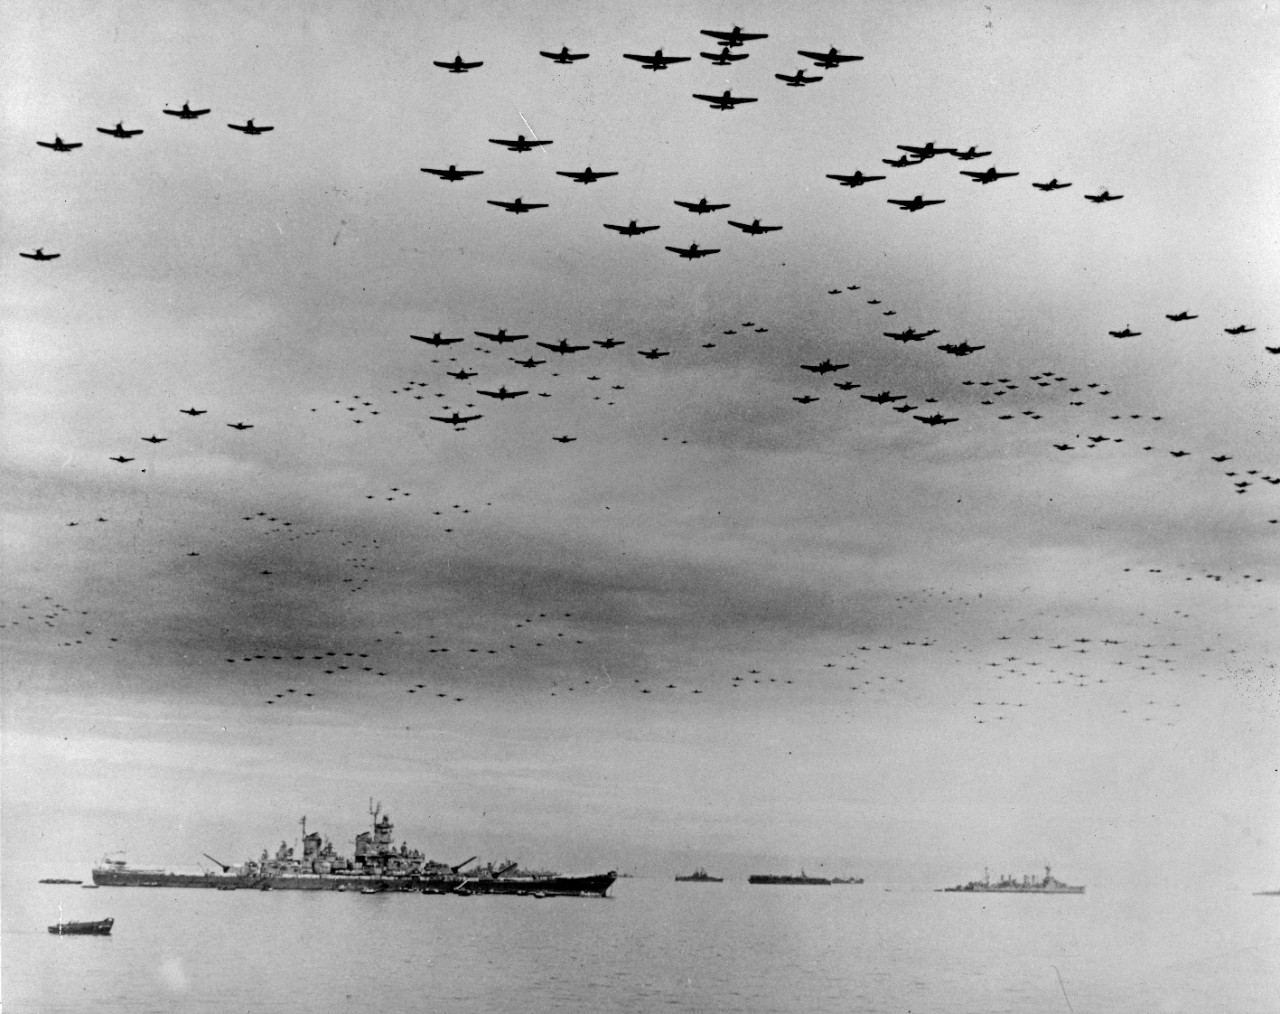 Photo #: 80-G-421130  Surrender of Japan, 2 September 1945